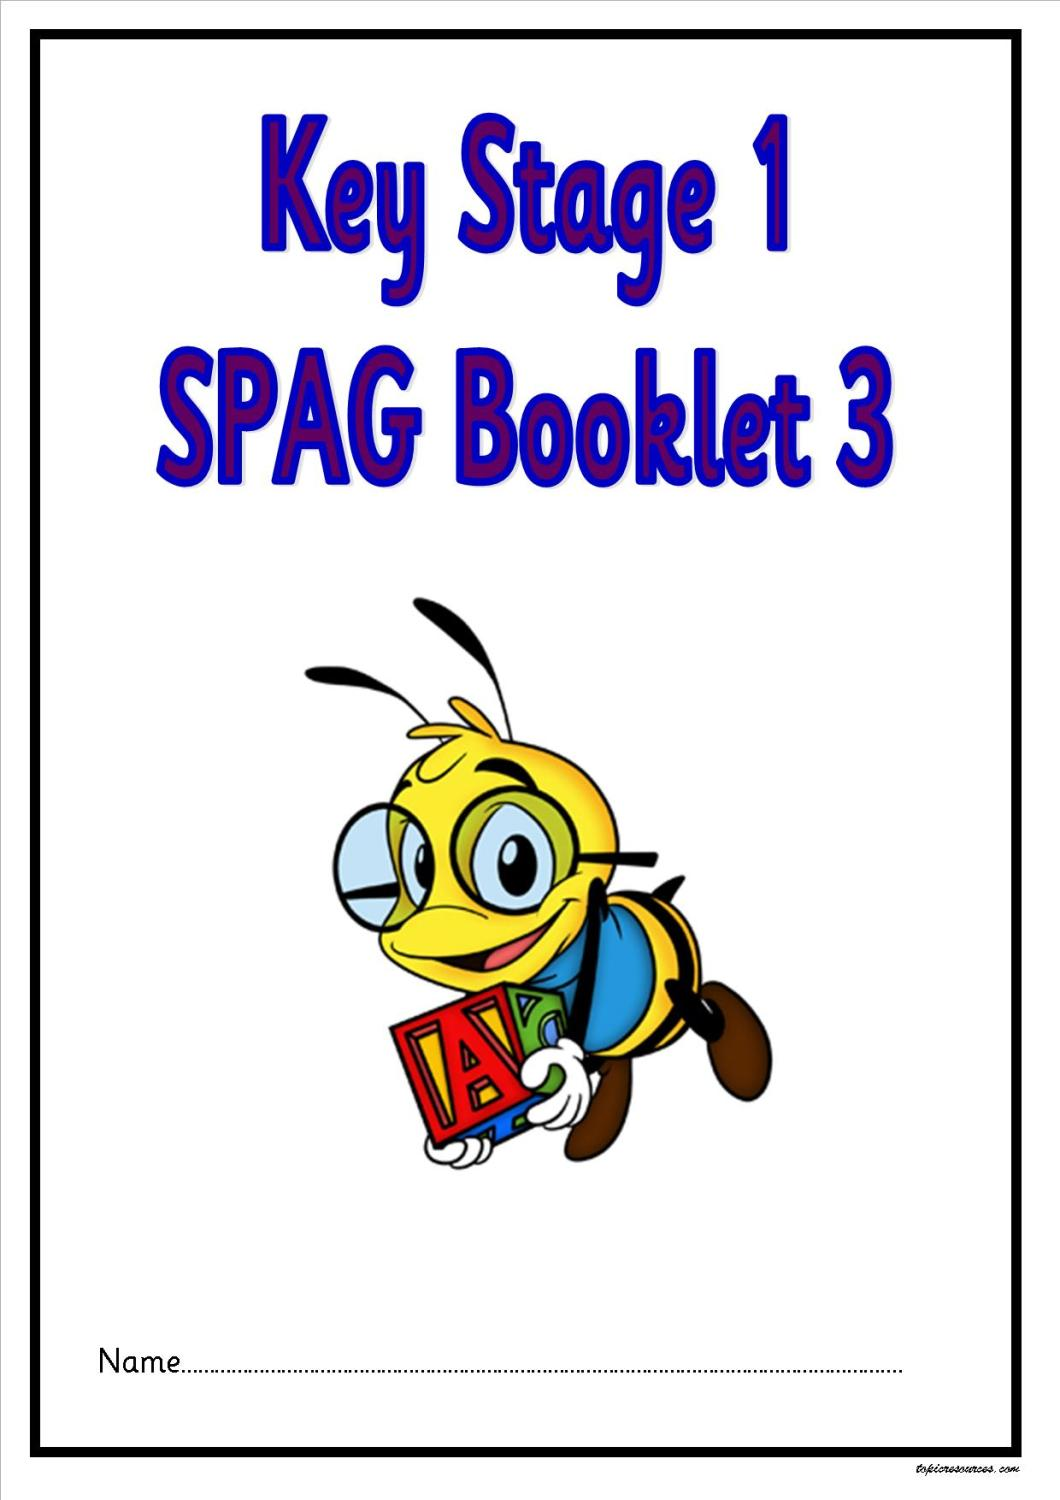 SPAG activity booklet3 for KS1 children